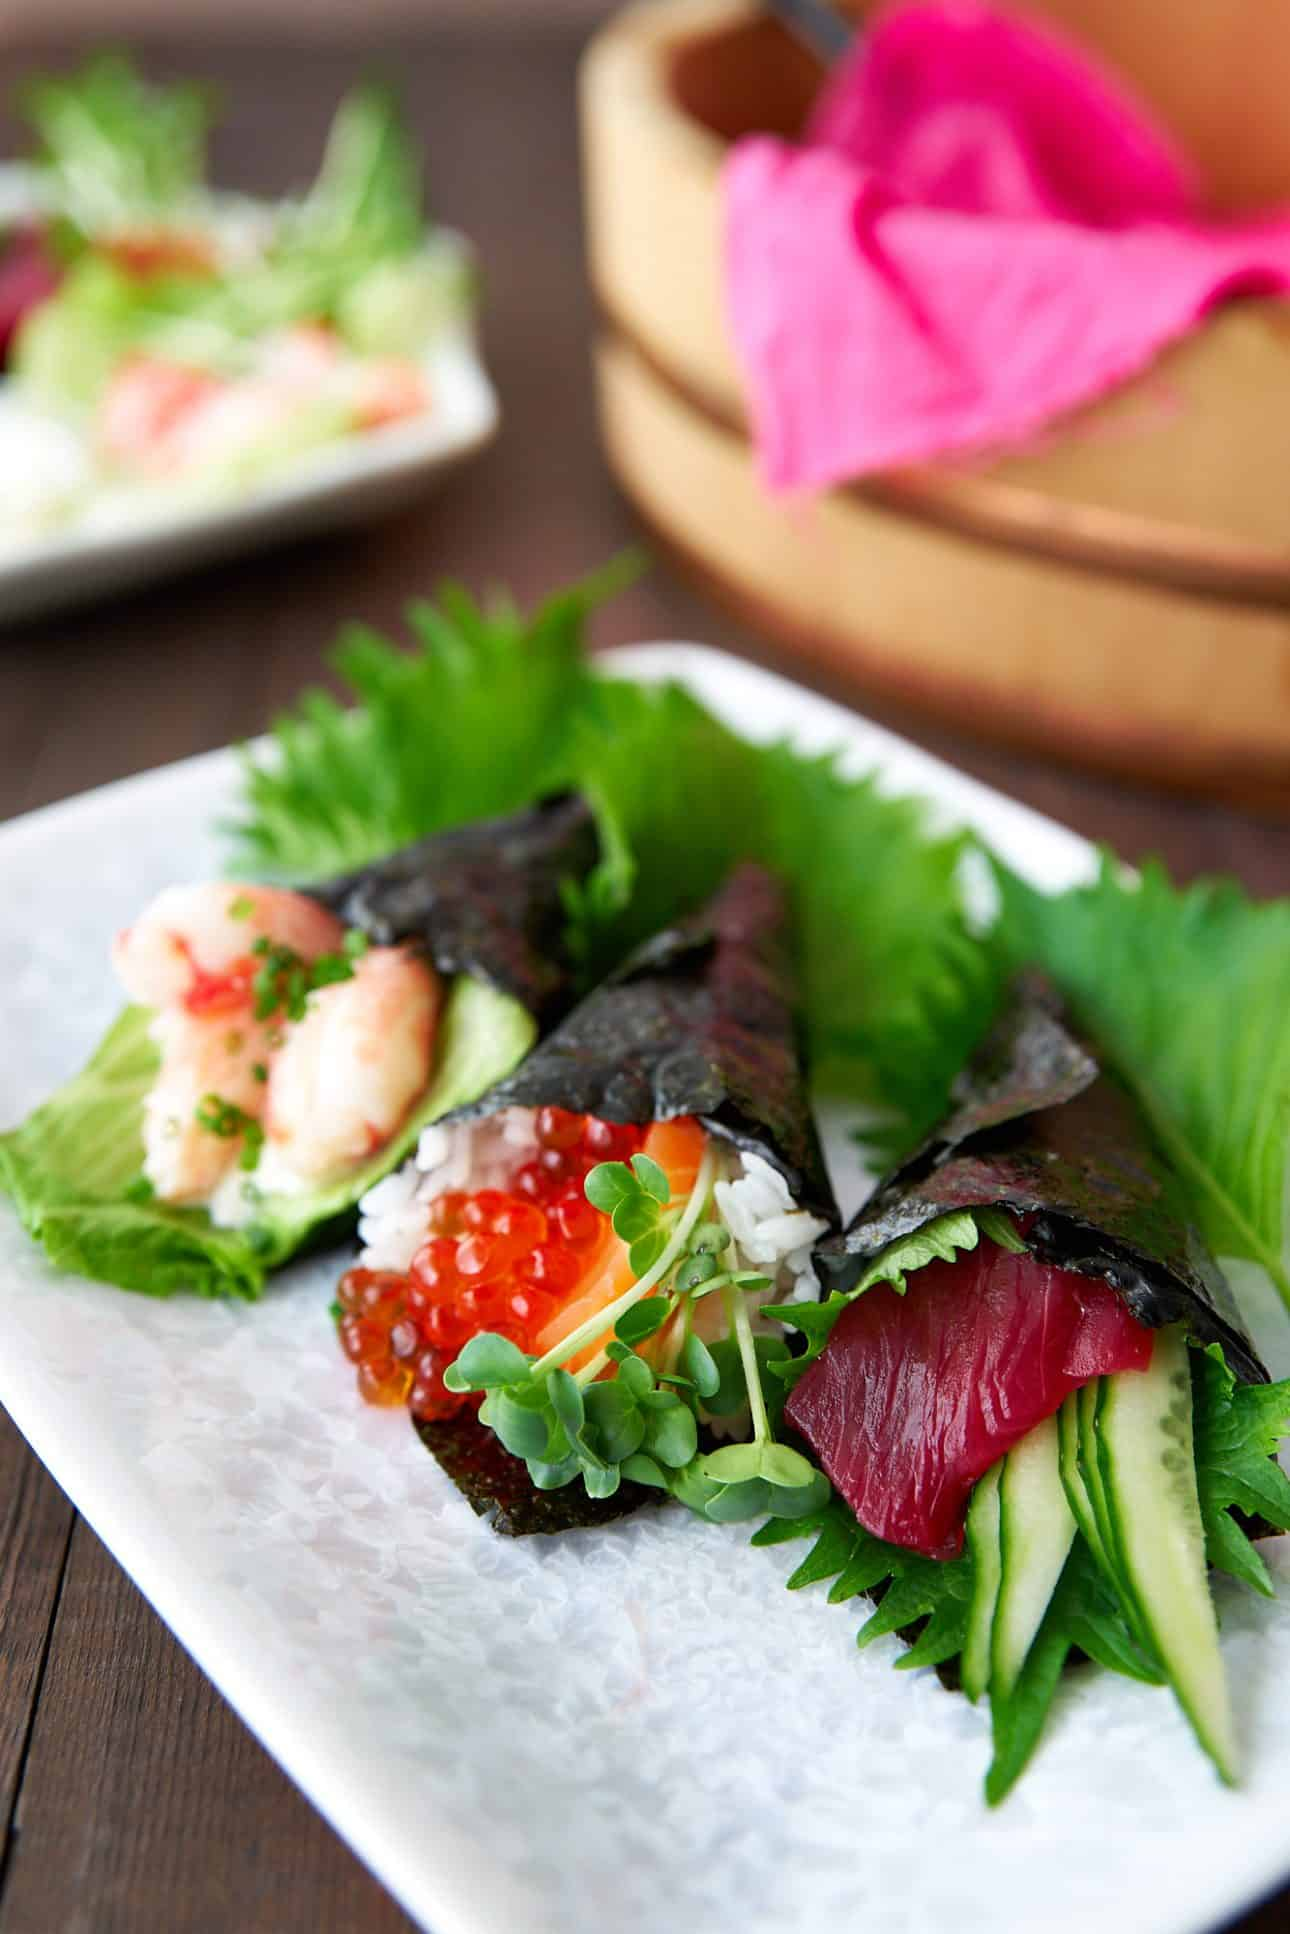 Temaki sushi is an easy hand-rolled sushi that you can fill with your favorite ingredients. Perfect for parties.